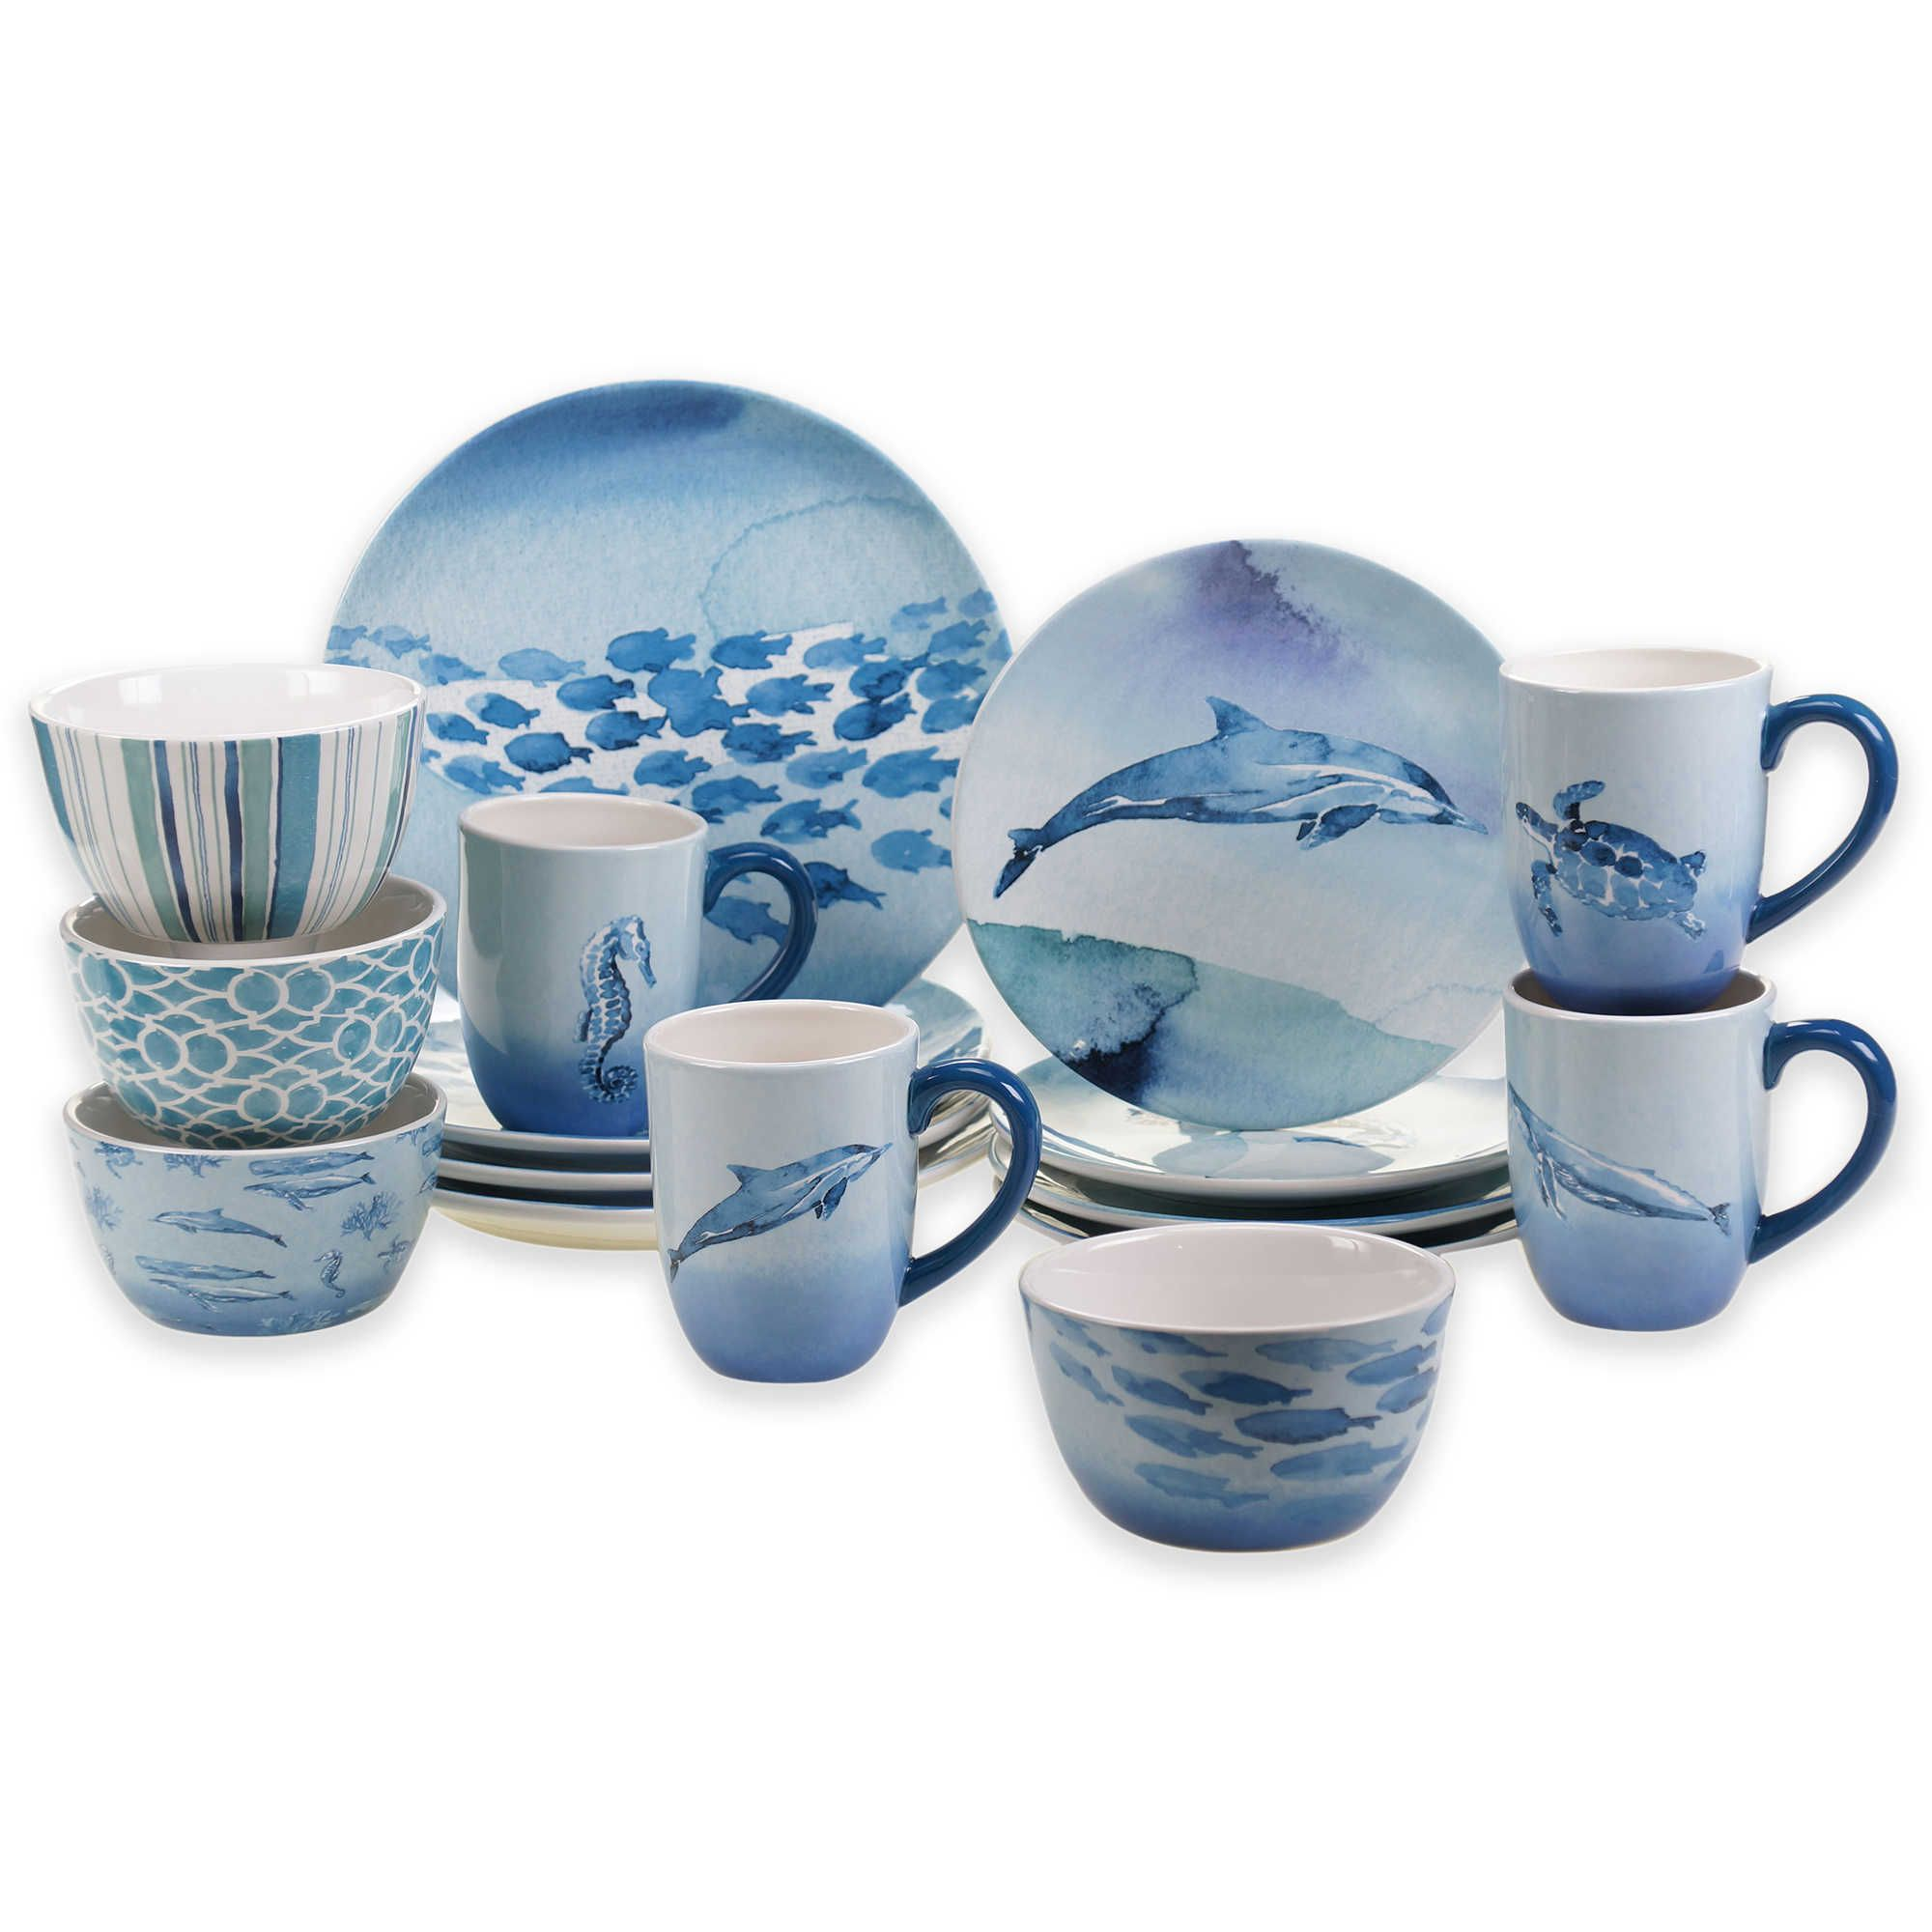 Certified international parisian fruit canister by susan winget set - Certified International Sea Life Dinnerware Collection Dinnerware Sets